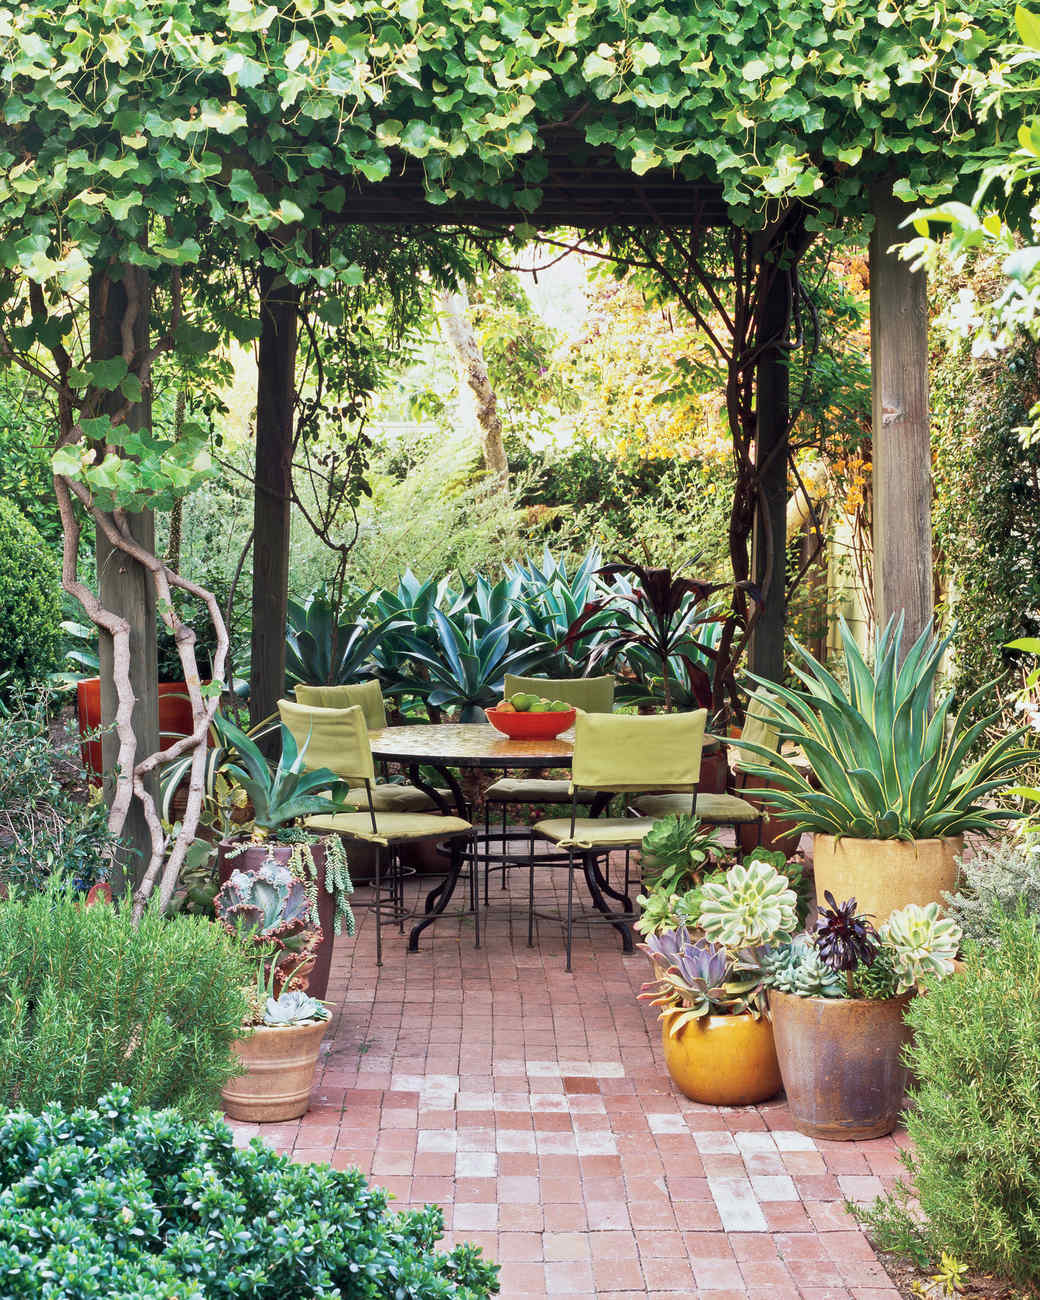 mlheeger1_0910_patio.jpg